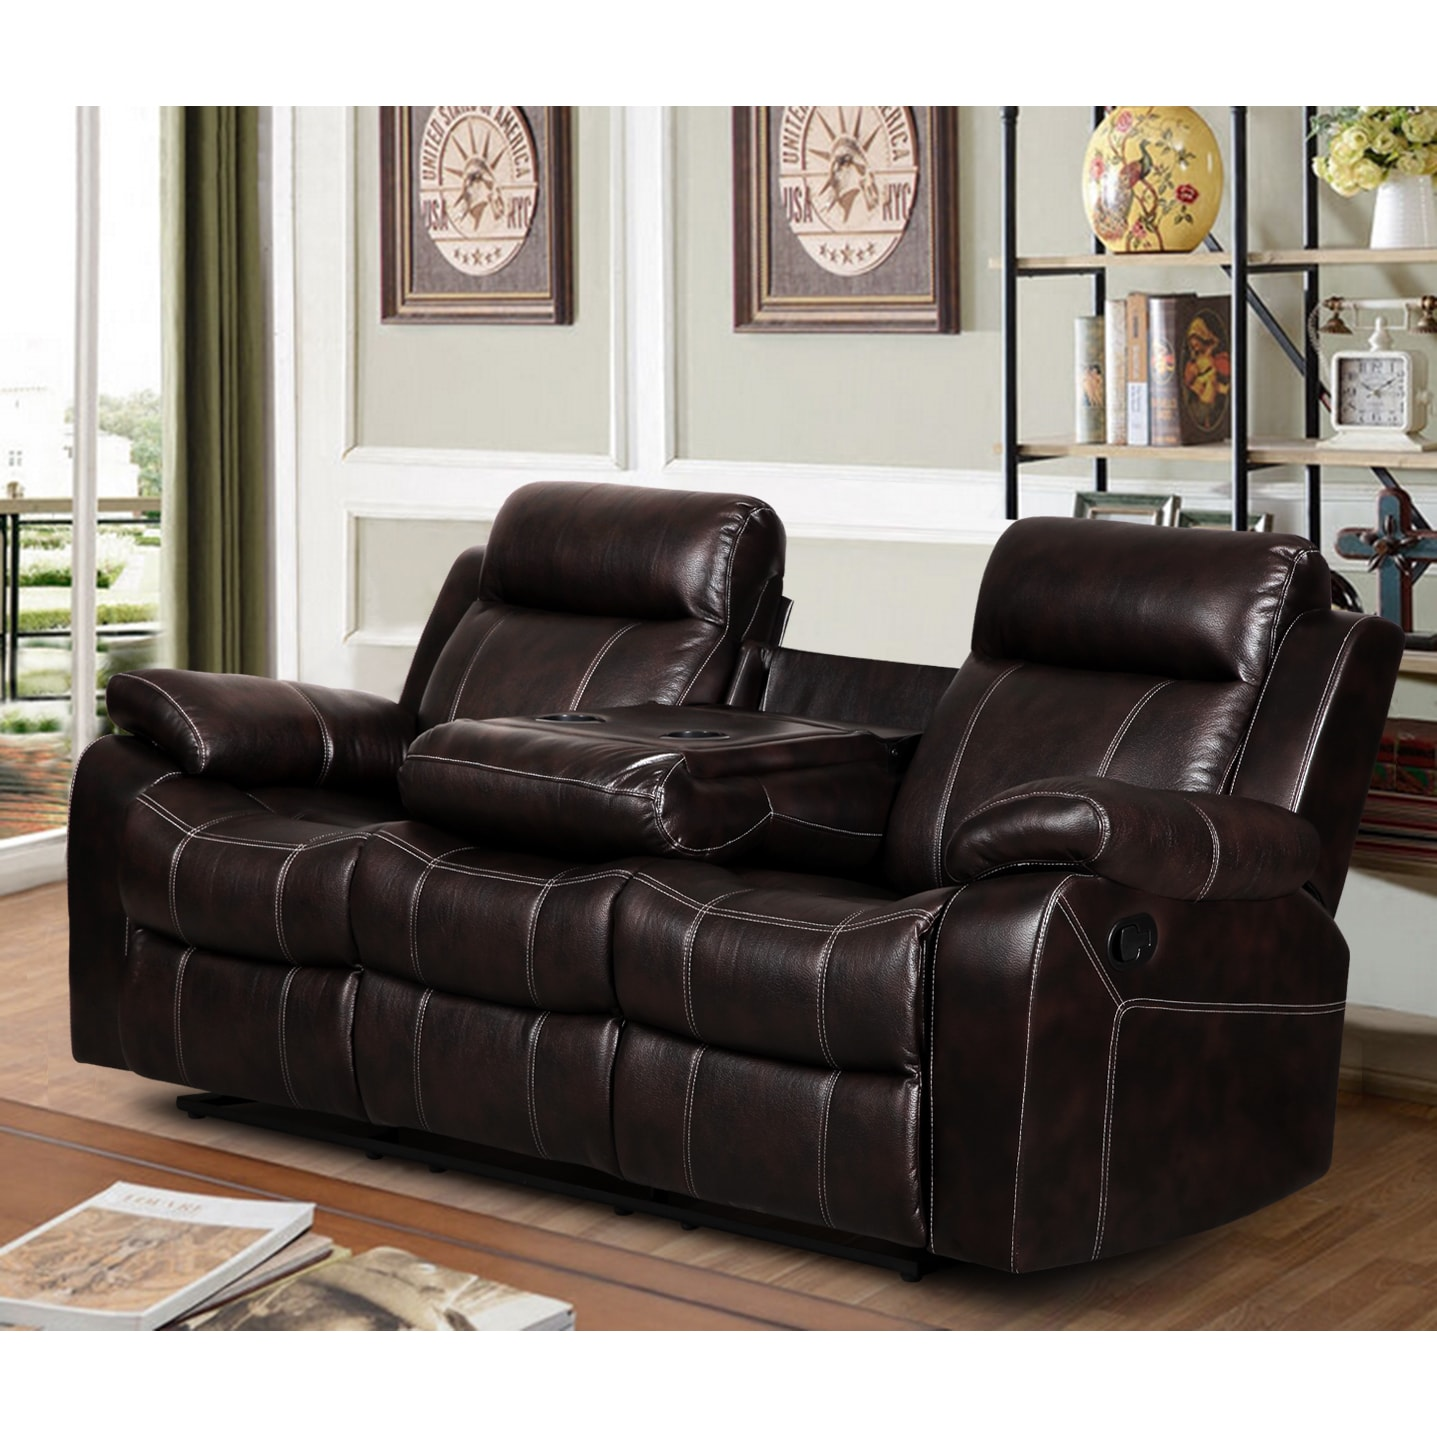 Shop Finley Dark Brown Leather Gel Living Room Reclining Sofa With